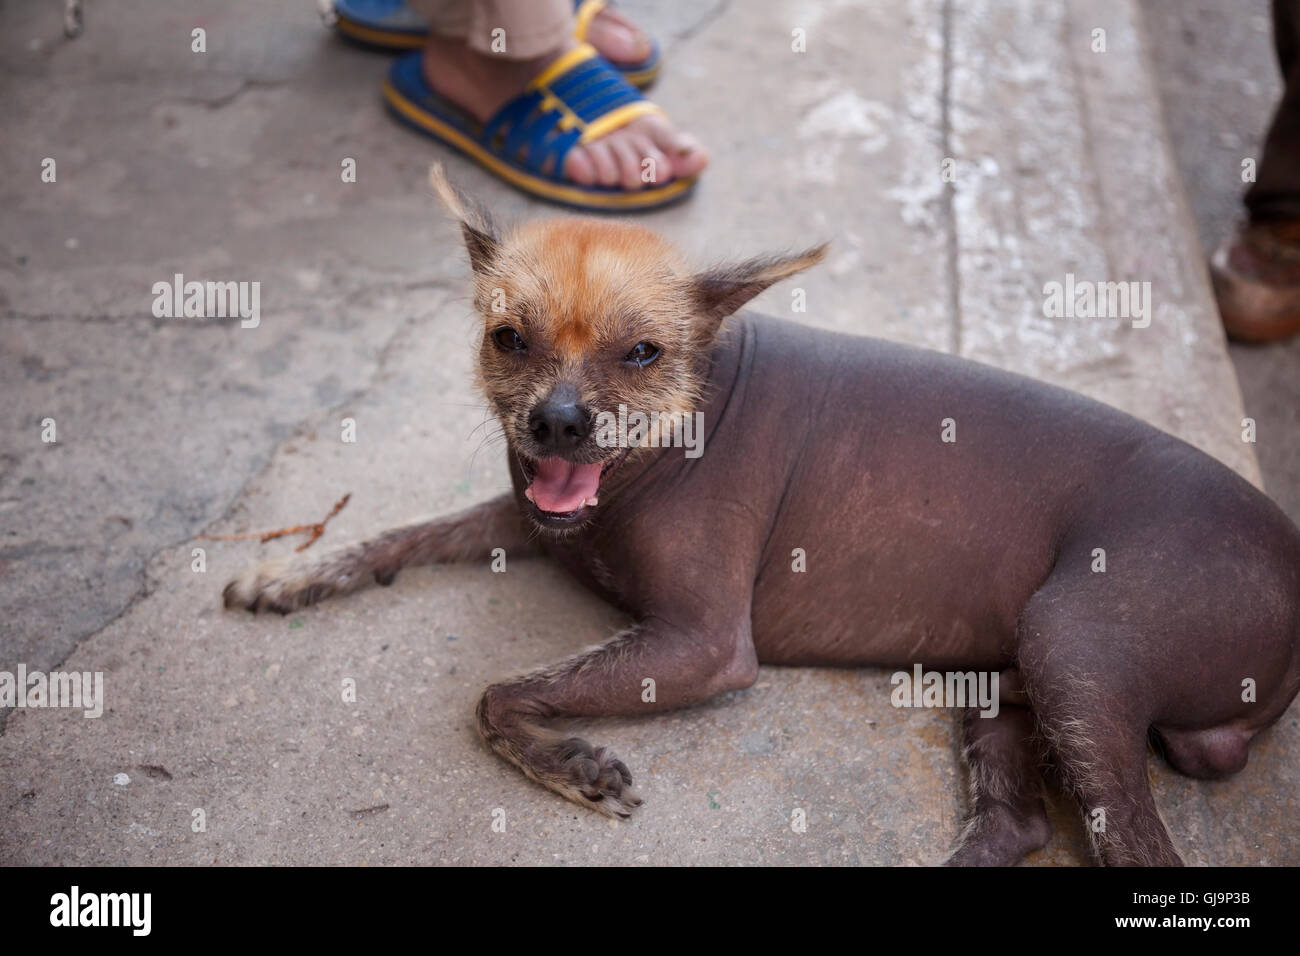 A hairless dog laying down with his mouth open in the municipality of Regla, Havana, Cuba. - Stock Image